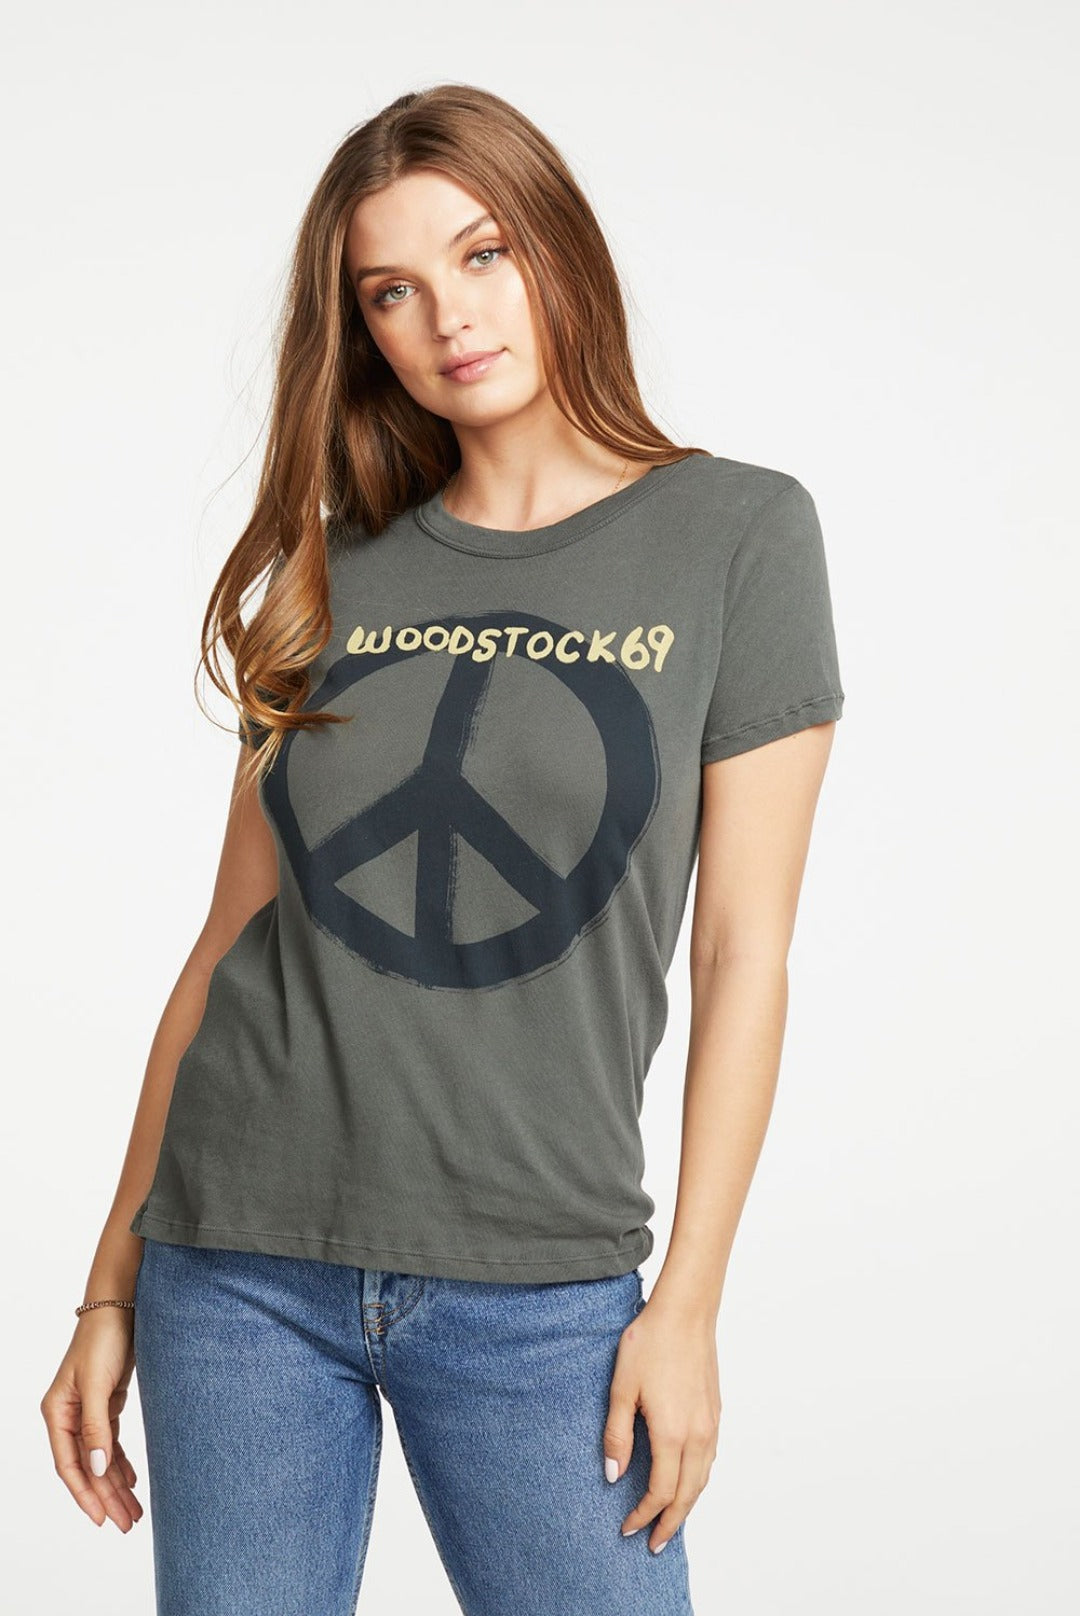 Chaser Woodstock-Peace Sign Slim Tee